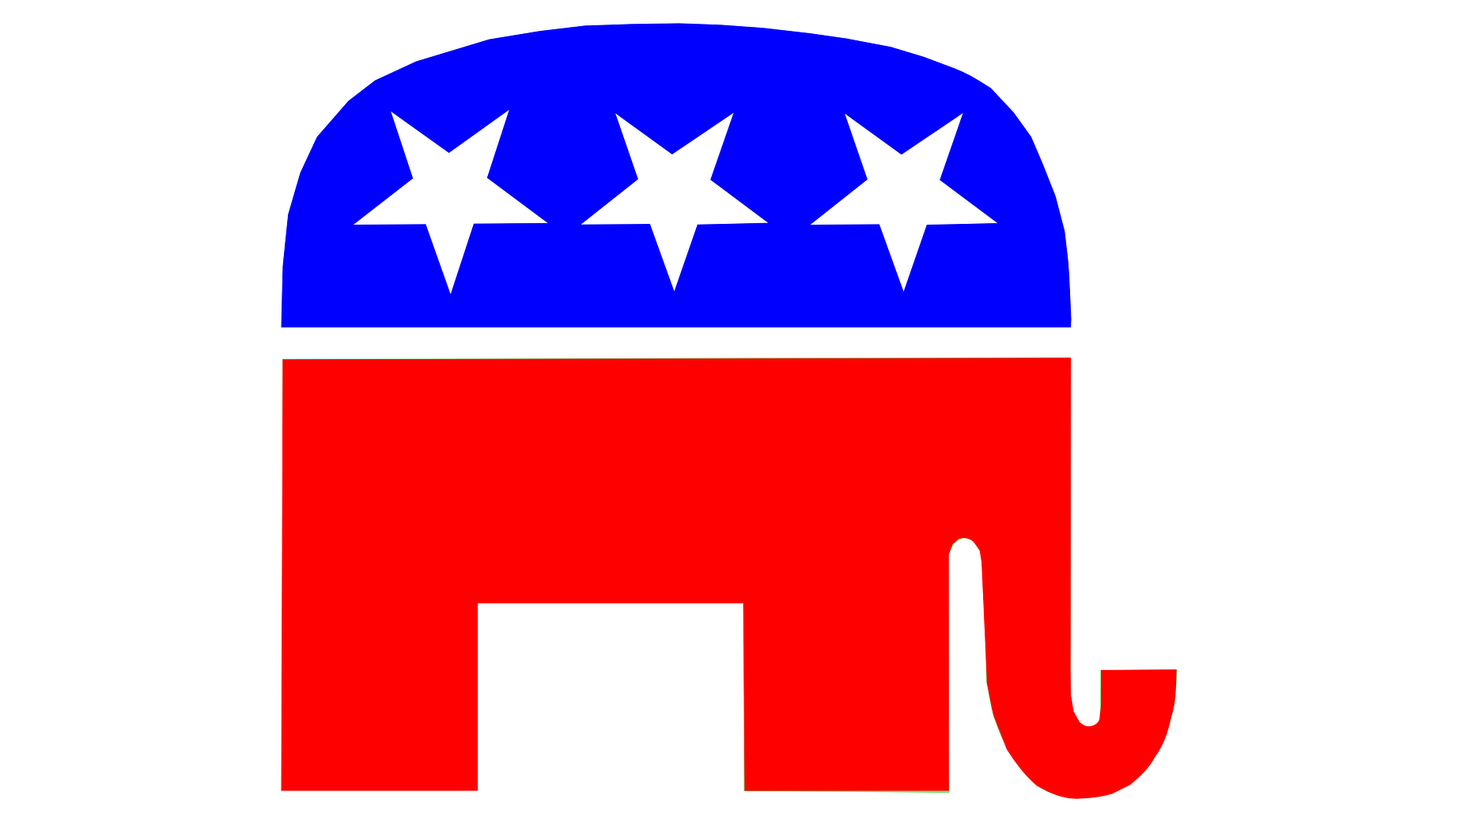 Republican party symbol.